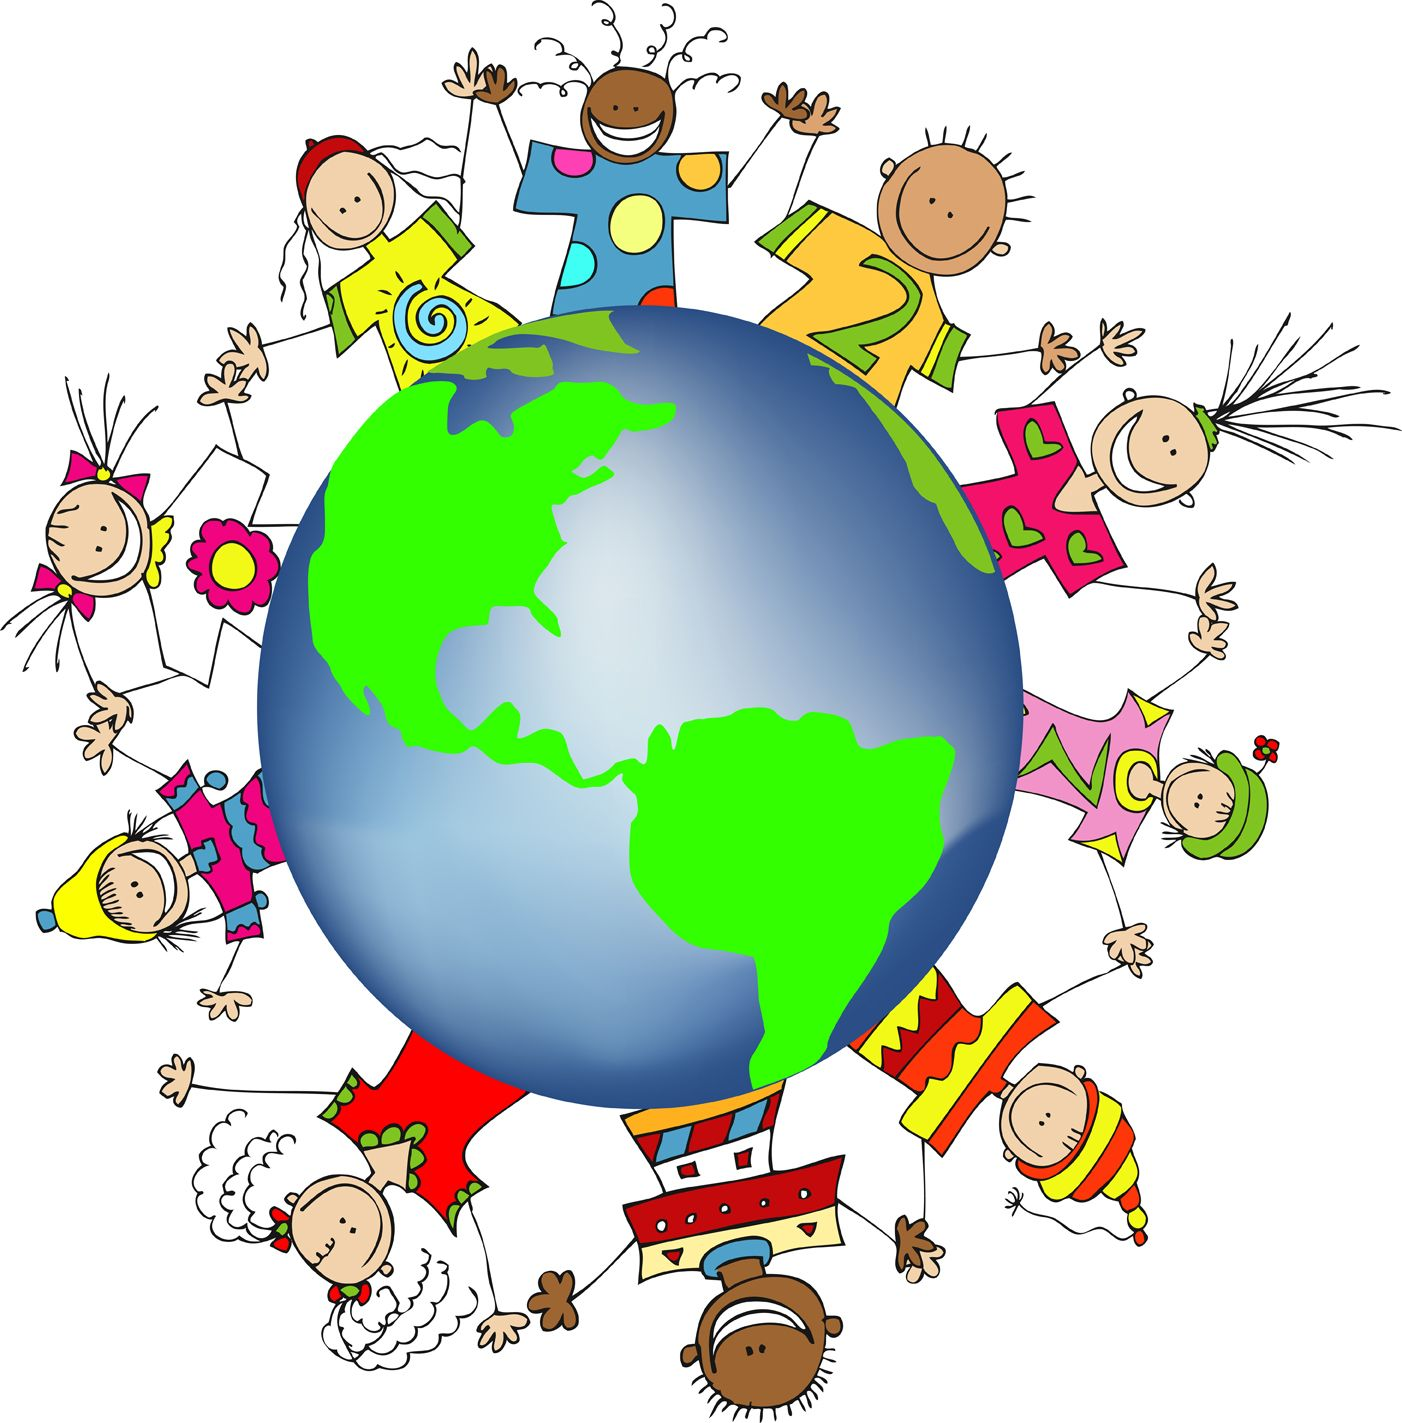 kids world hands friends networks globe illustration small free rh pinterest nz clip art world war 1 clip art world flags